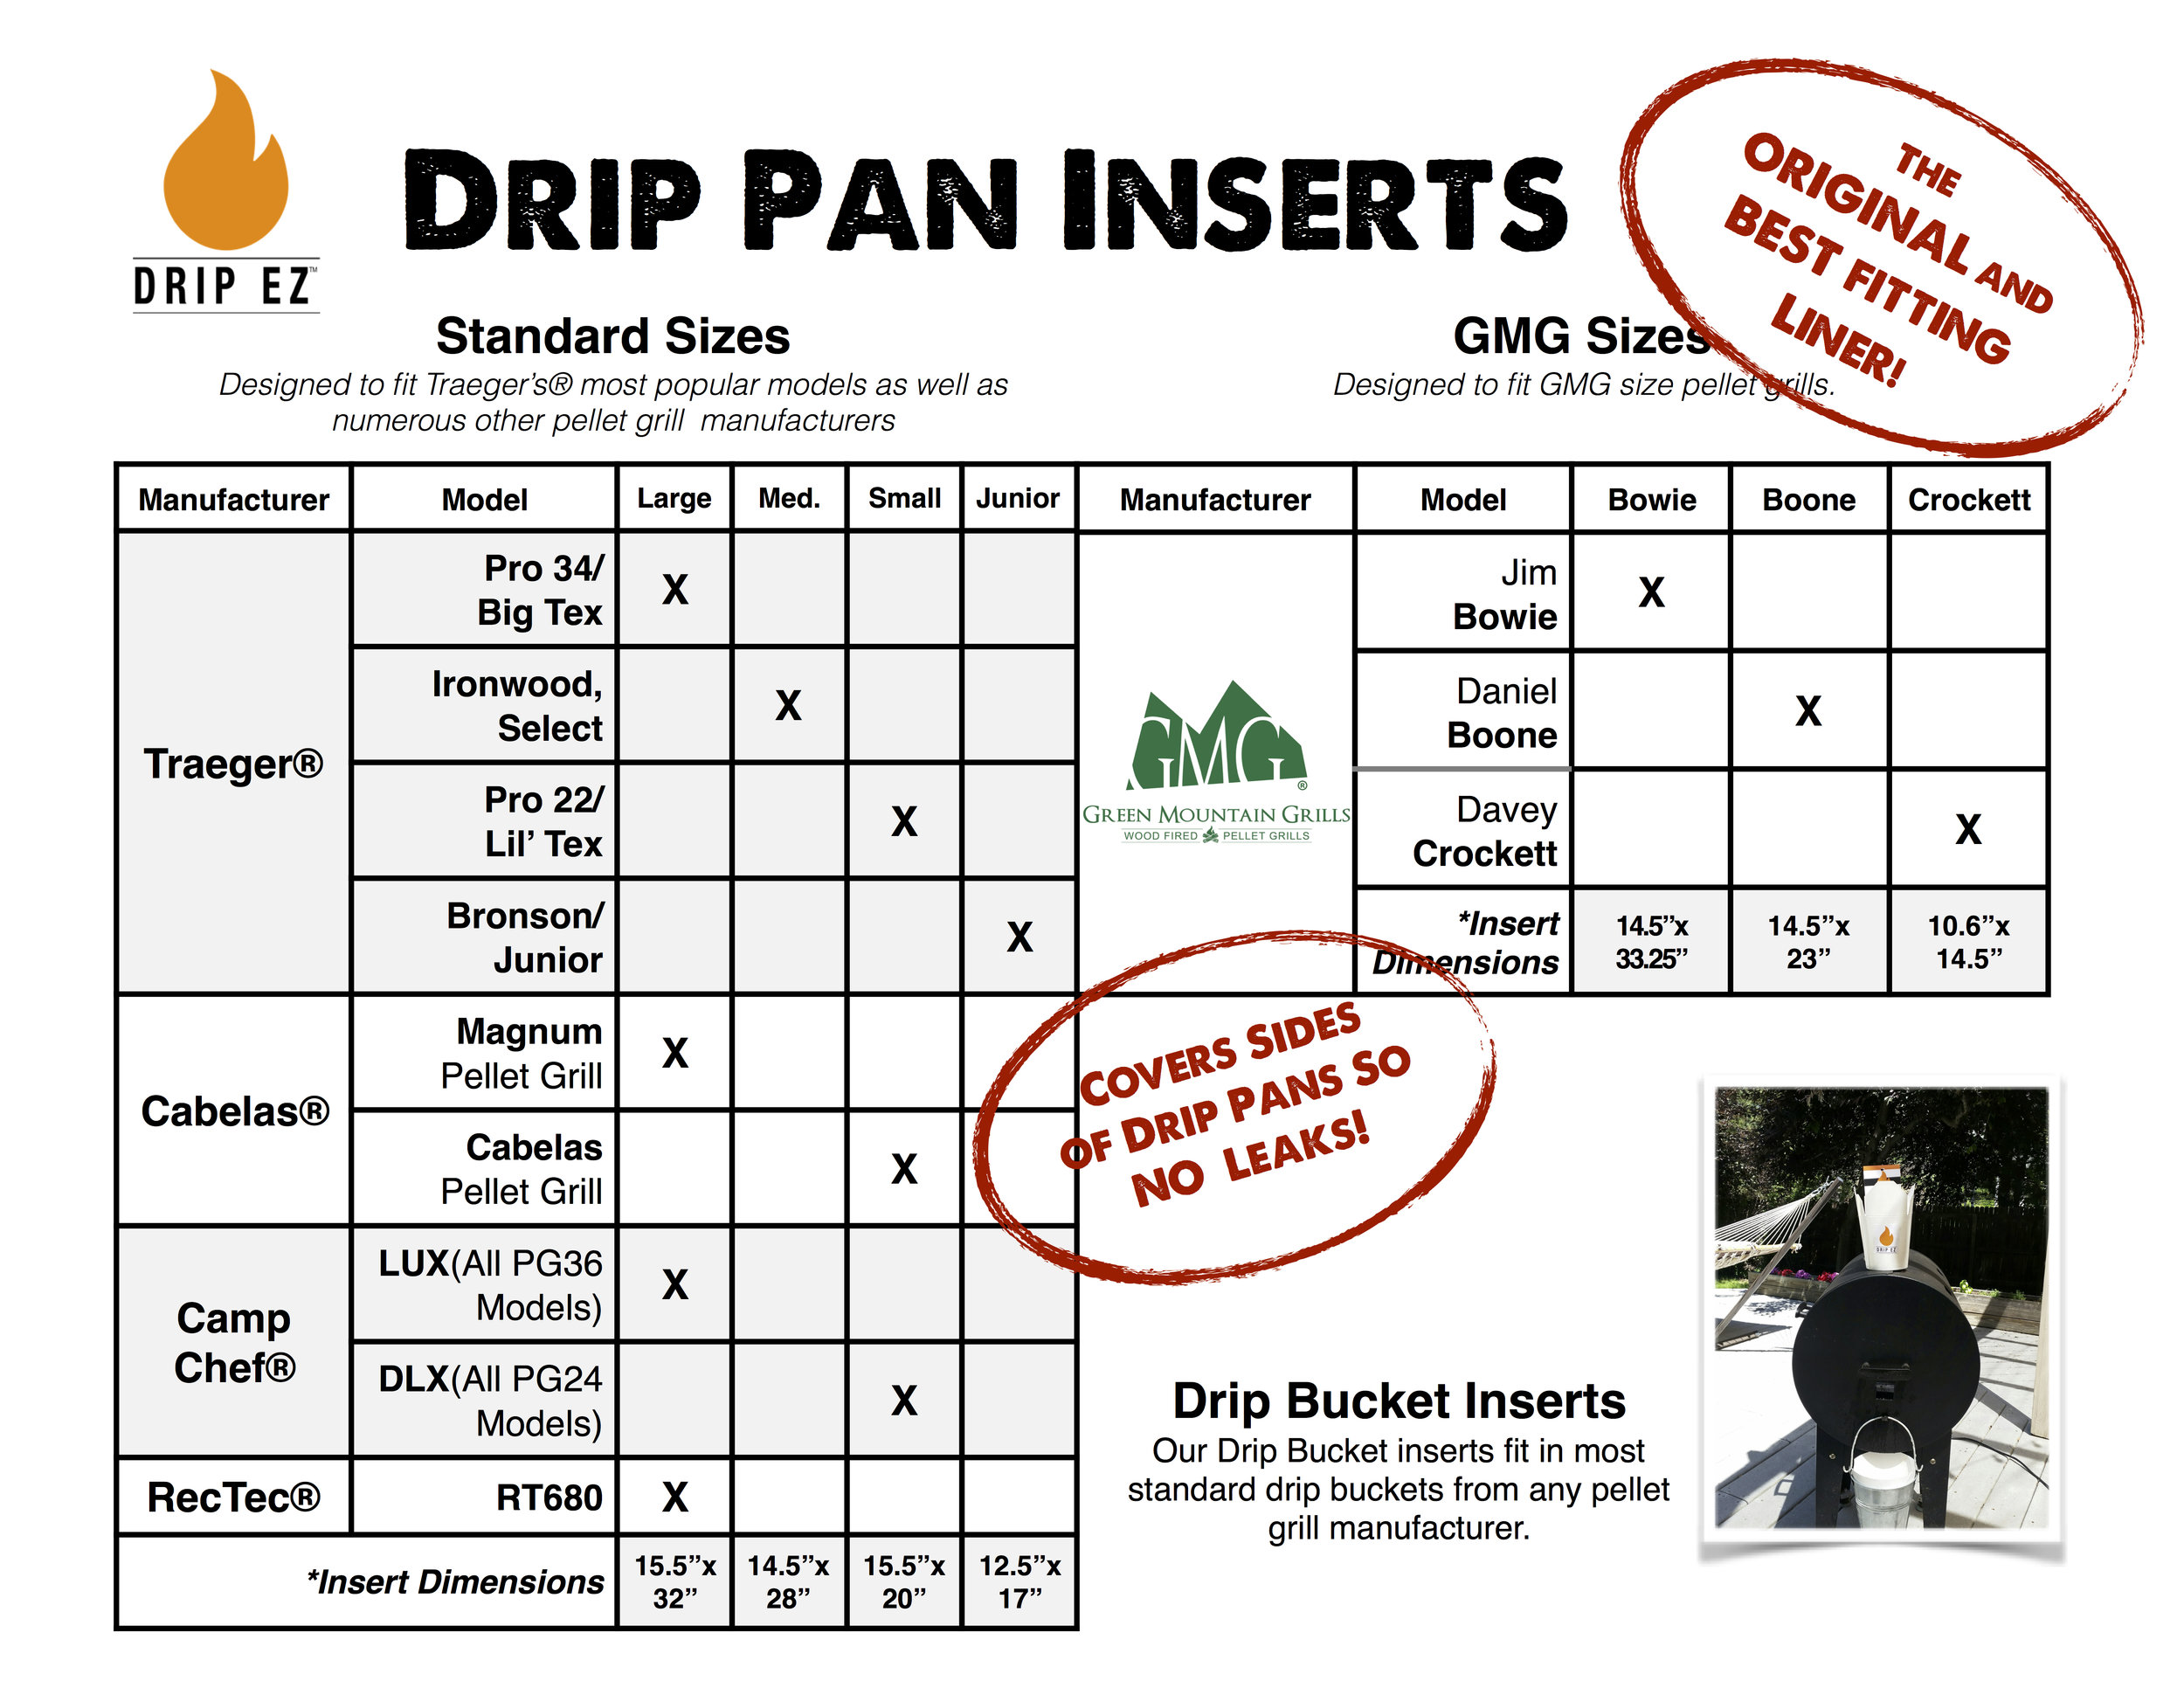 Our Drip Pan Inserts fit over 85% of pellet grills sold today  including the most popular models/sizes of pellet grills from the two largest manufacturers: Traeger and Green Mountain Grills.  Standard Size inserts fit manufactures such as Traeger® , Cabelas®, Camp Chef®, and RecTec®.  Our GMG sized pans are designed to fit exclusively the Jim Bowie and Daniel Boone.